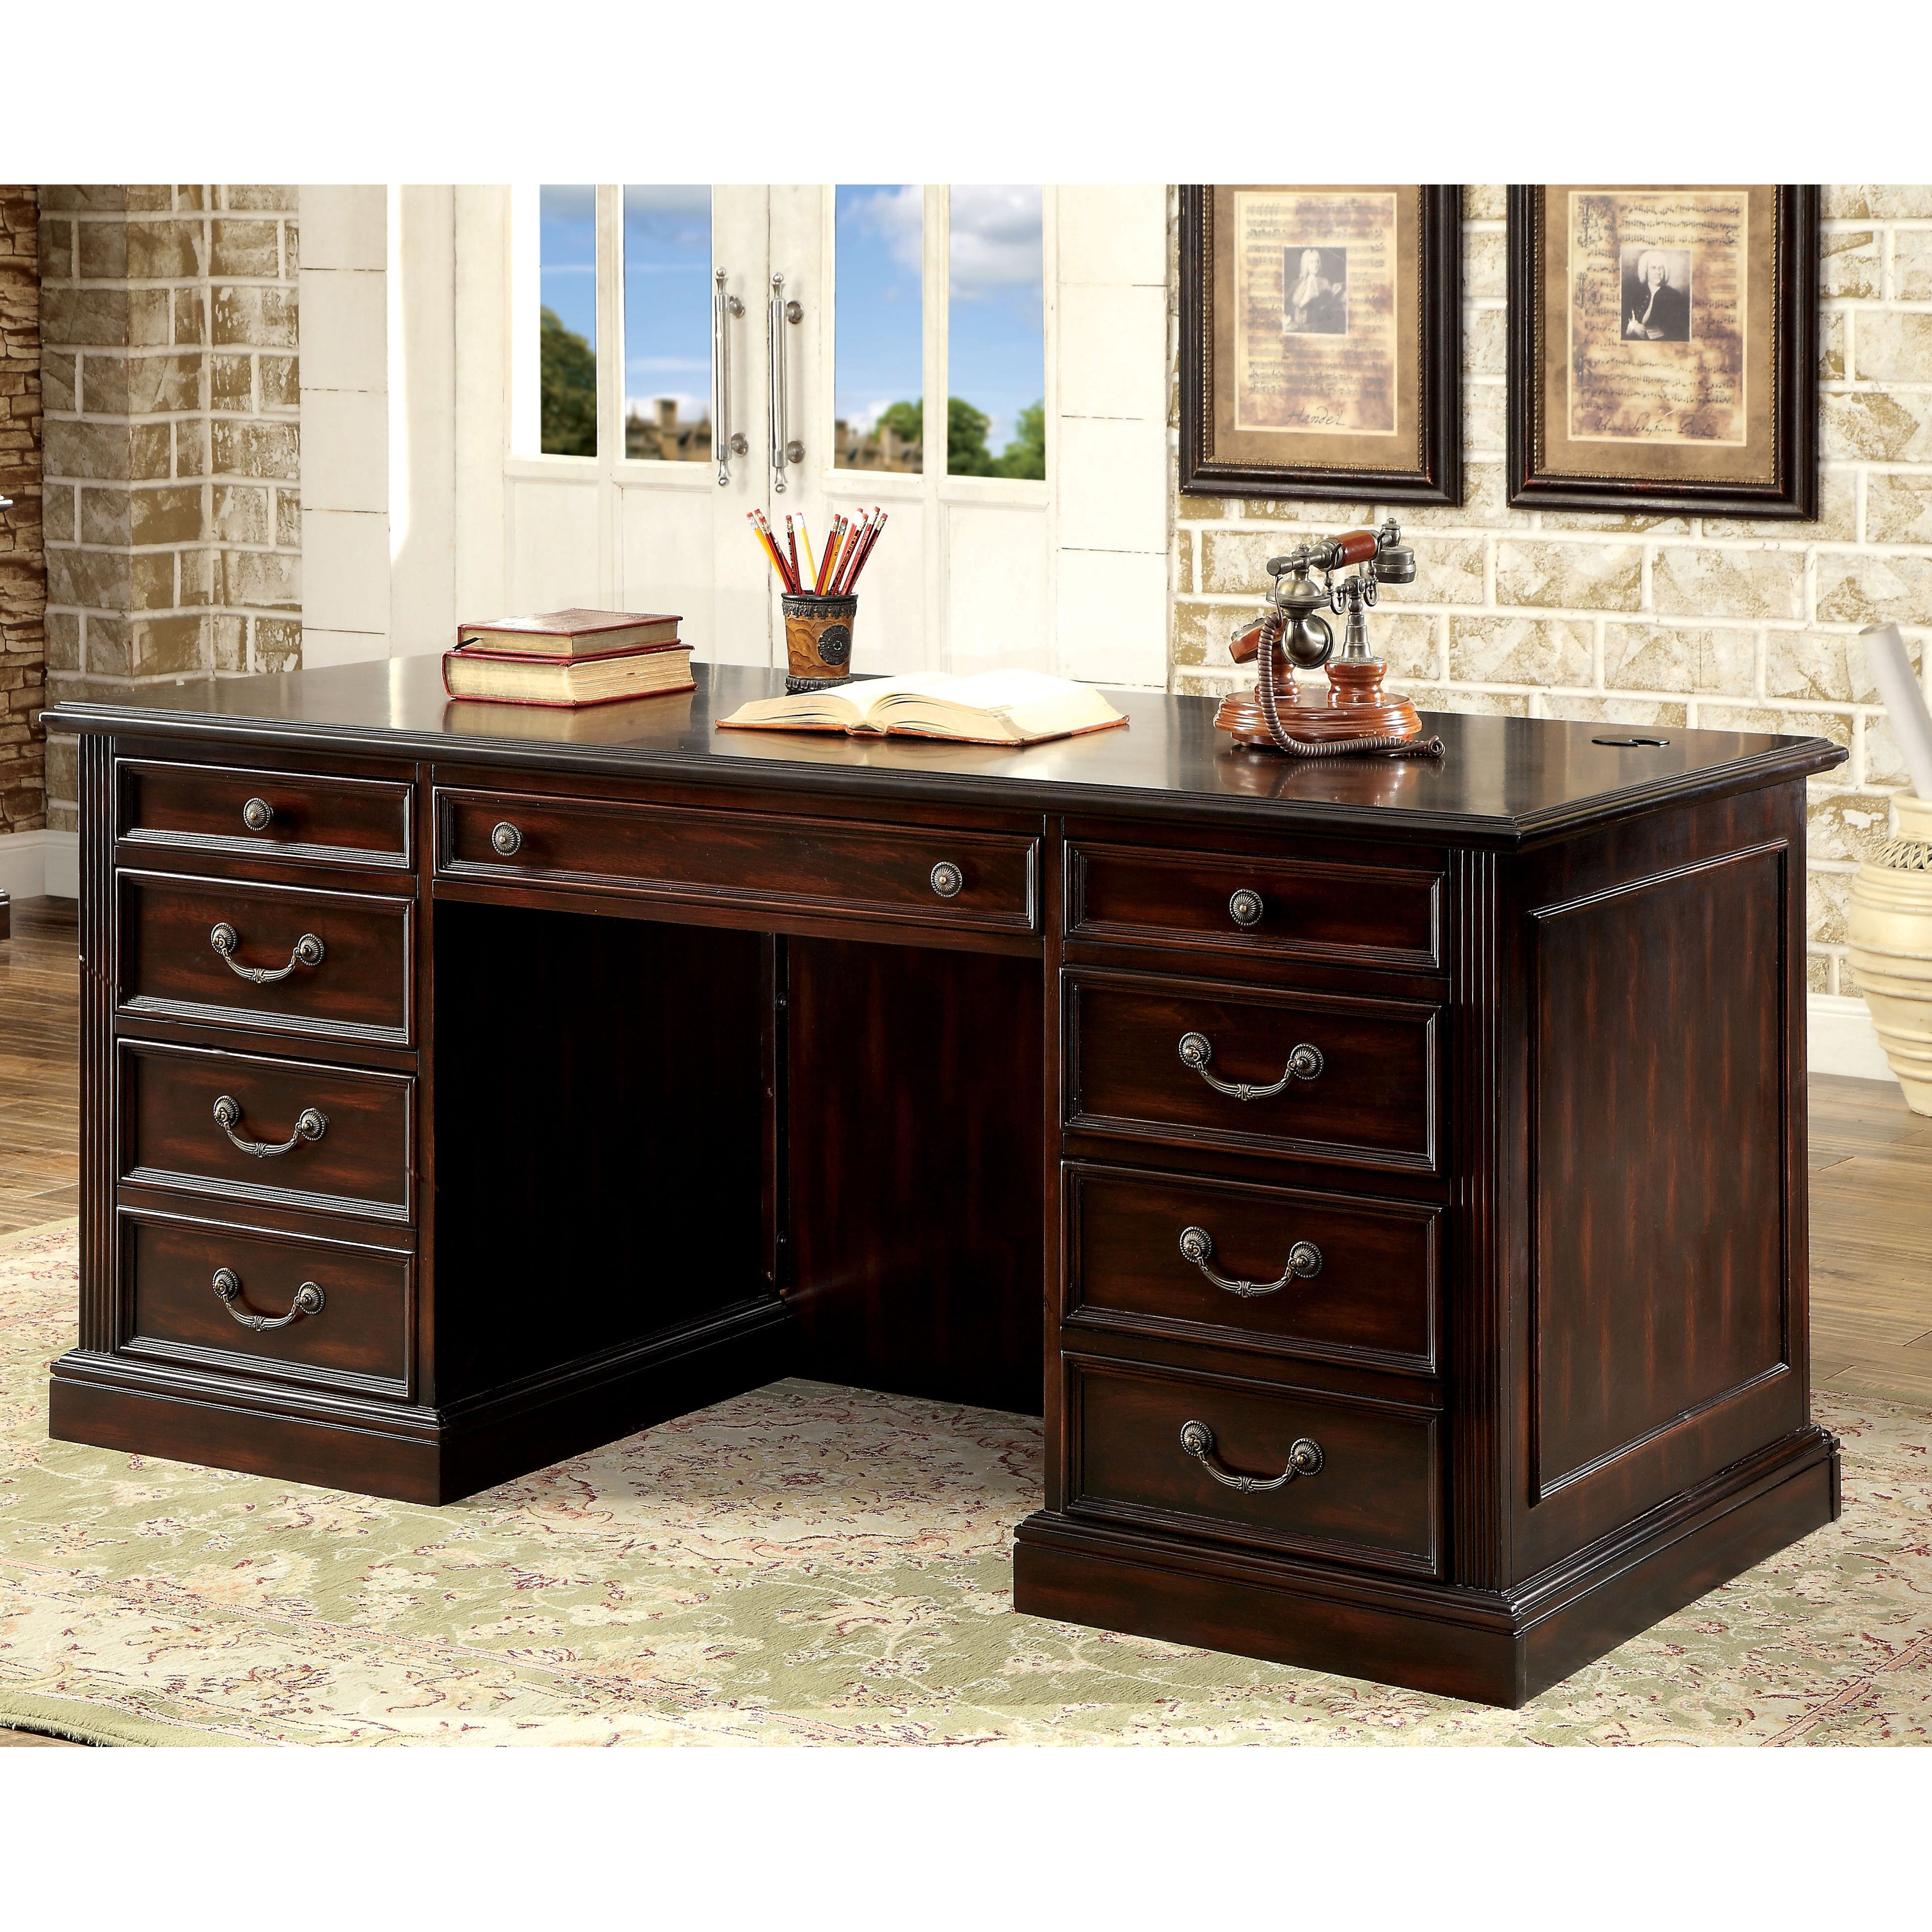 Furniture of America Rame Traditional Cherry 66-inch Executive Desk